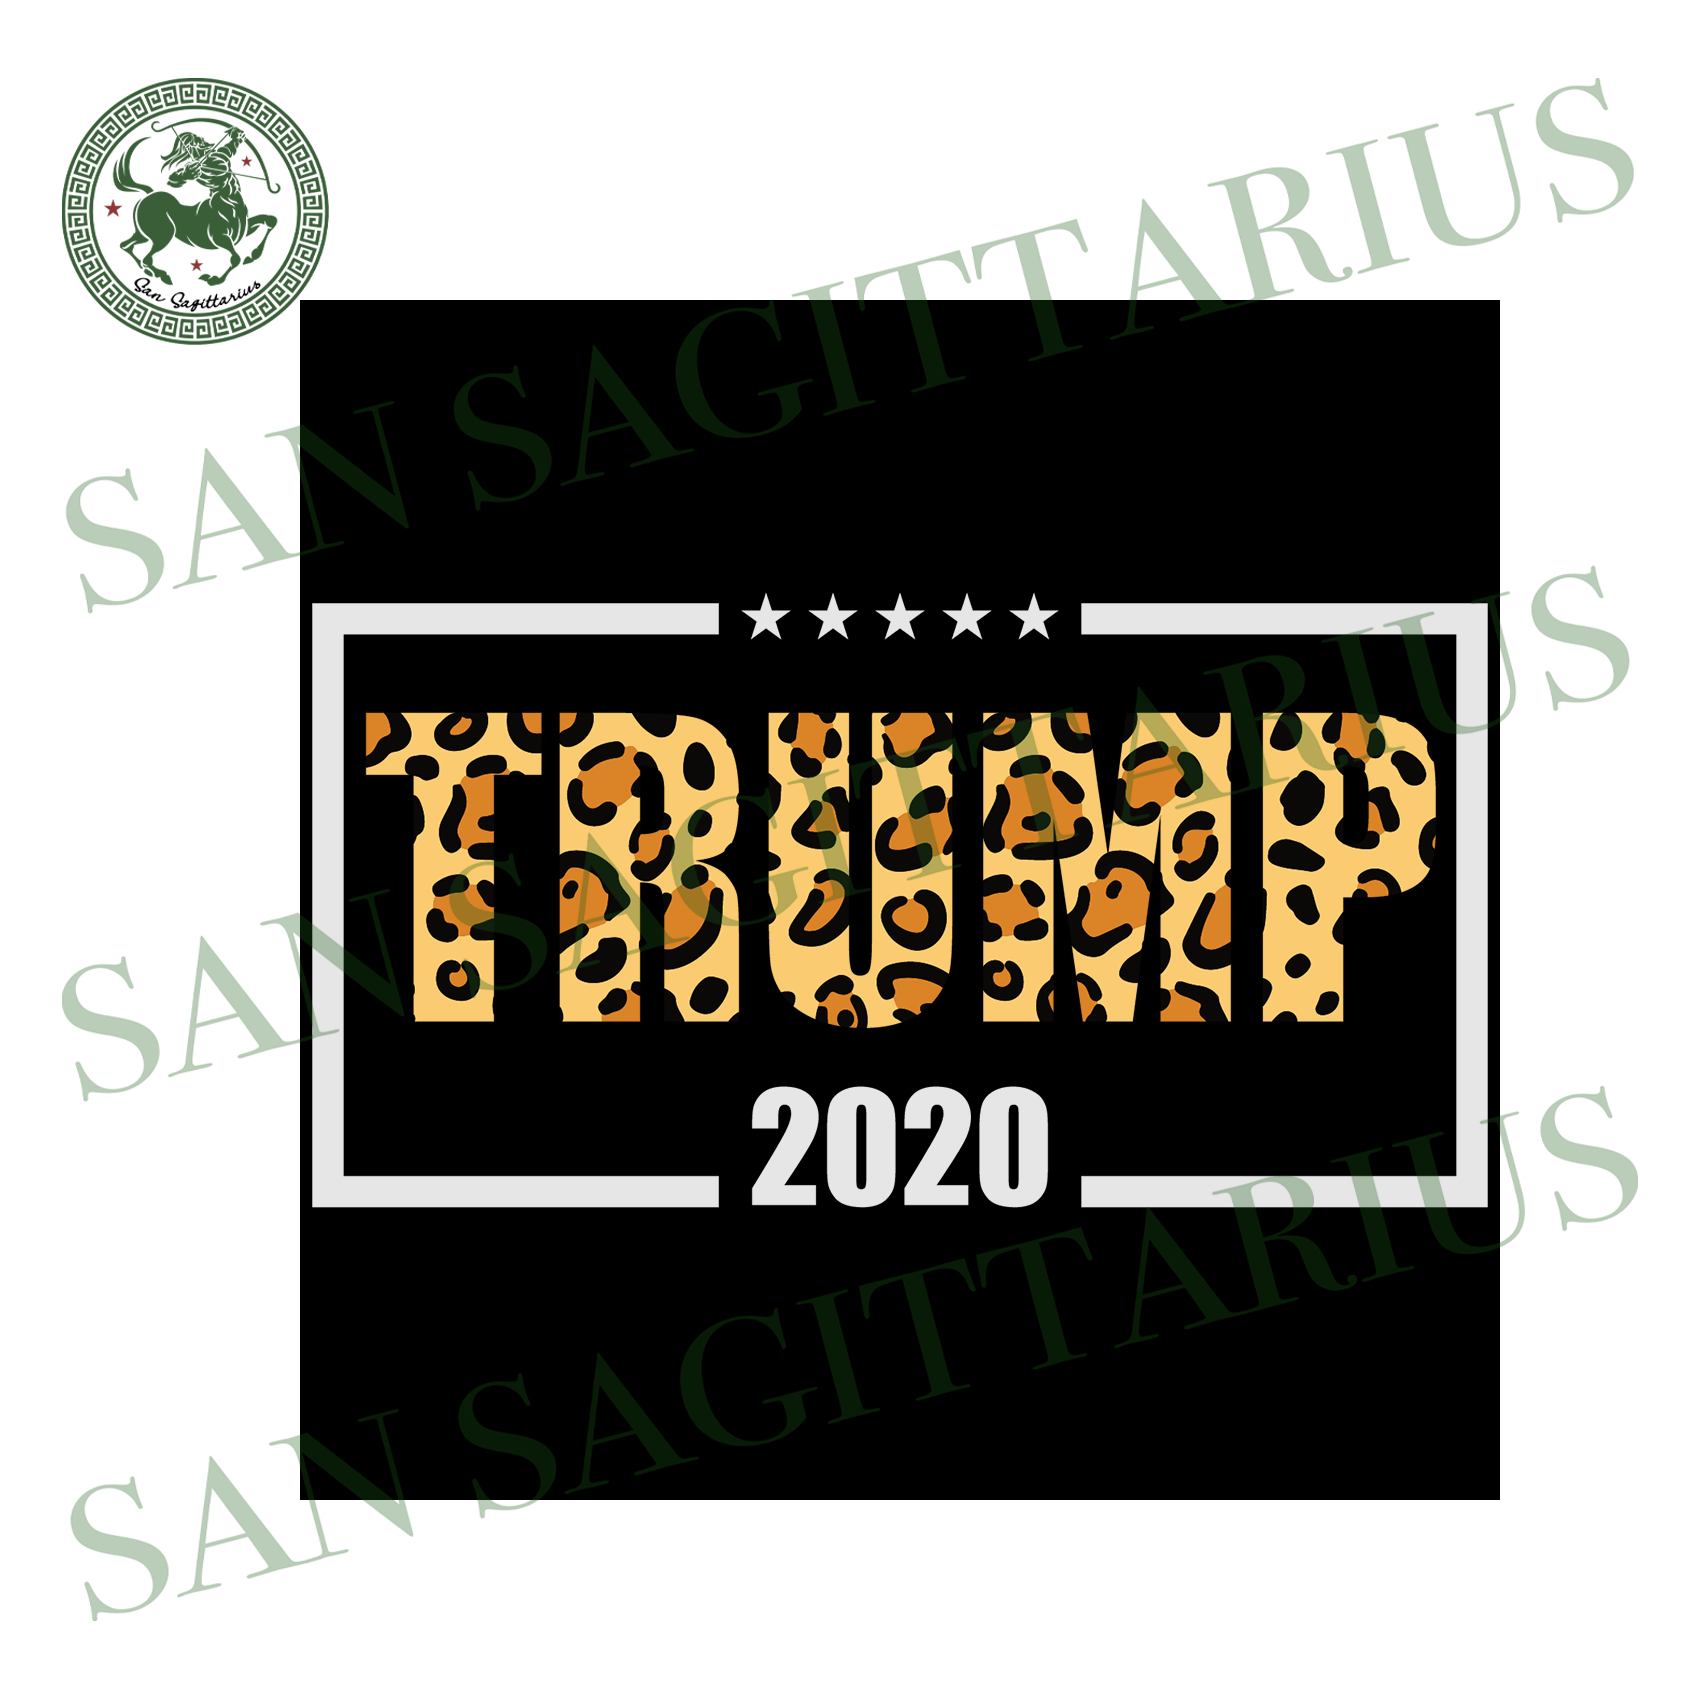 Trump 2020 svg,svg,donald trump svg,funny political,american pride,presidential,trump supporter,politician svg,svg cricut, silhouette svg files, cricut svg, silhouette svg, svg designs, vinyl